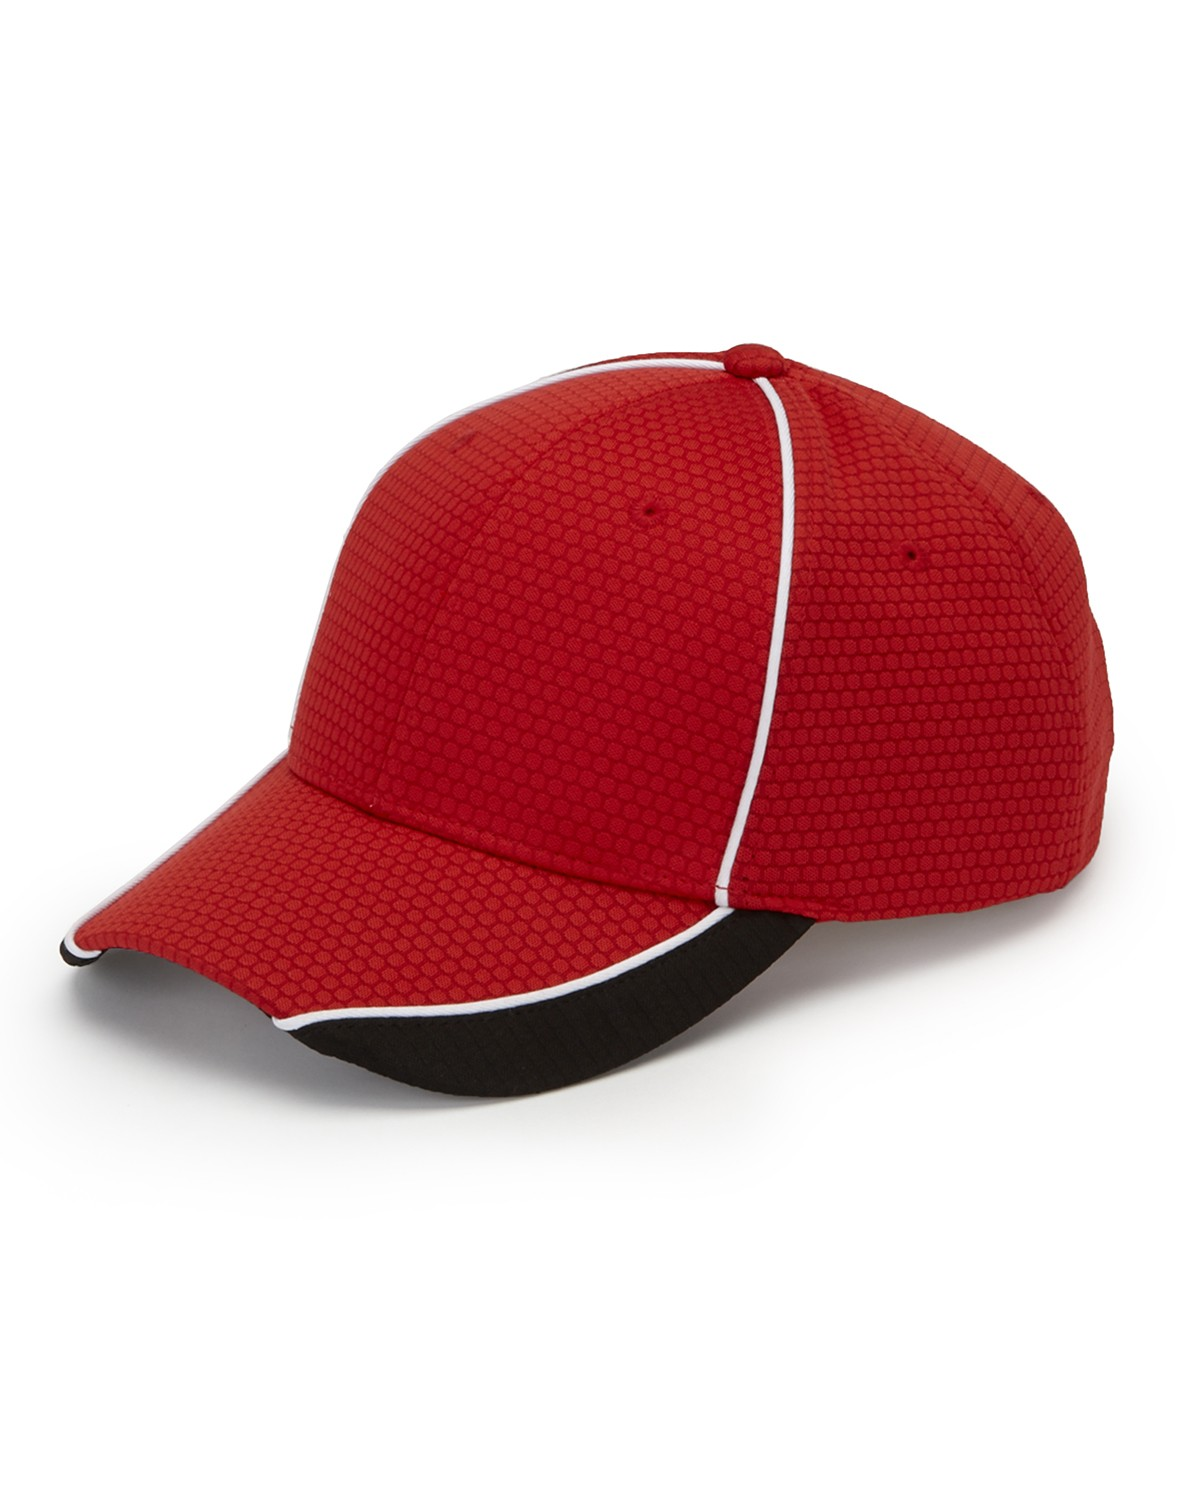 DP102 Adams RED/BLACK/WHT